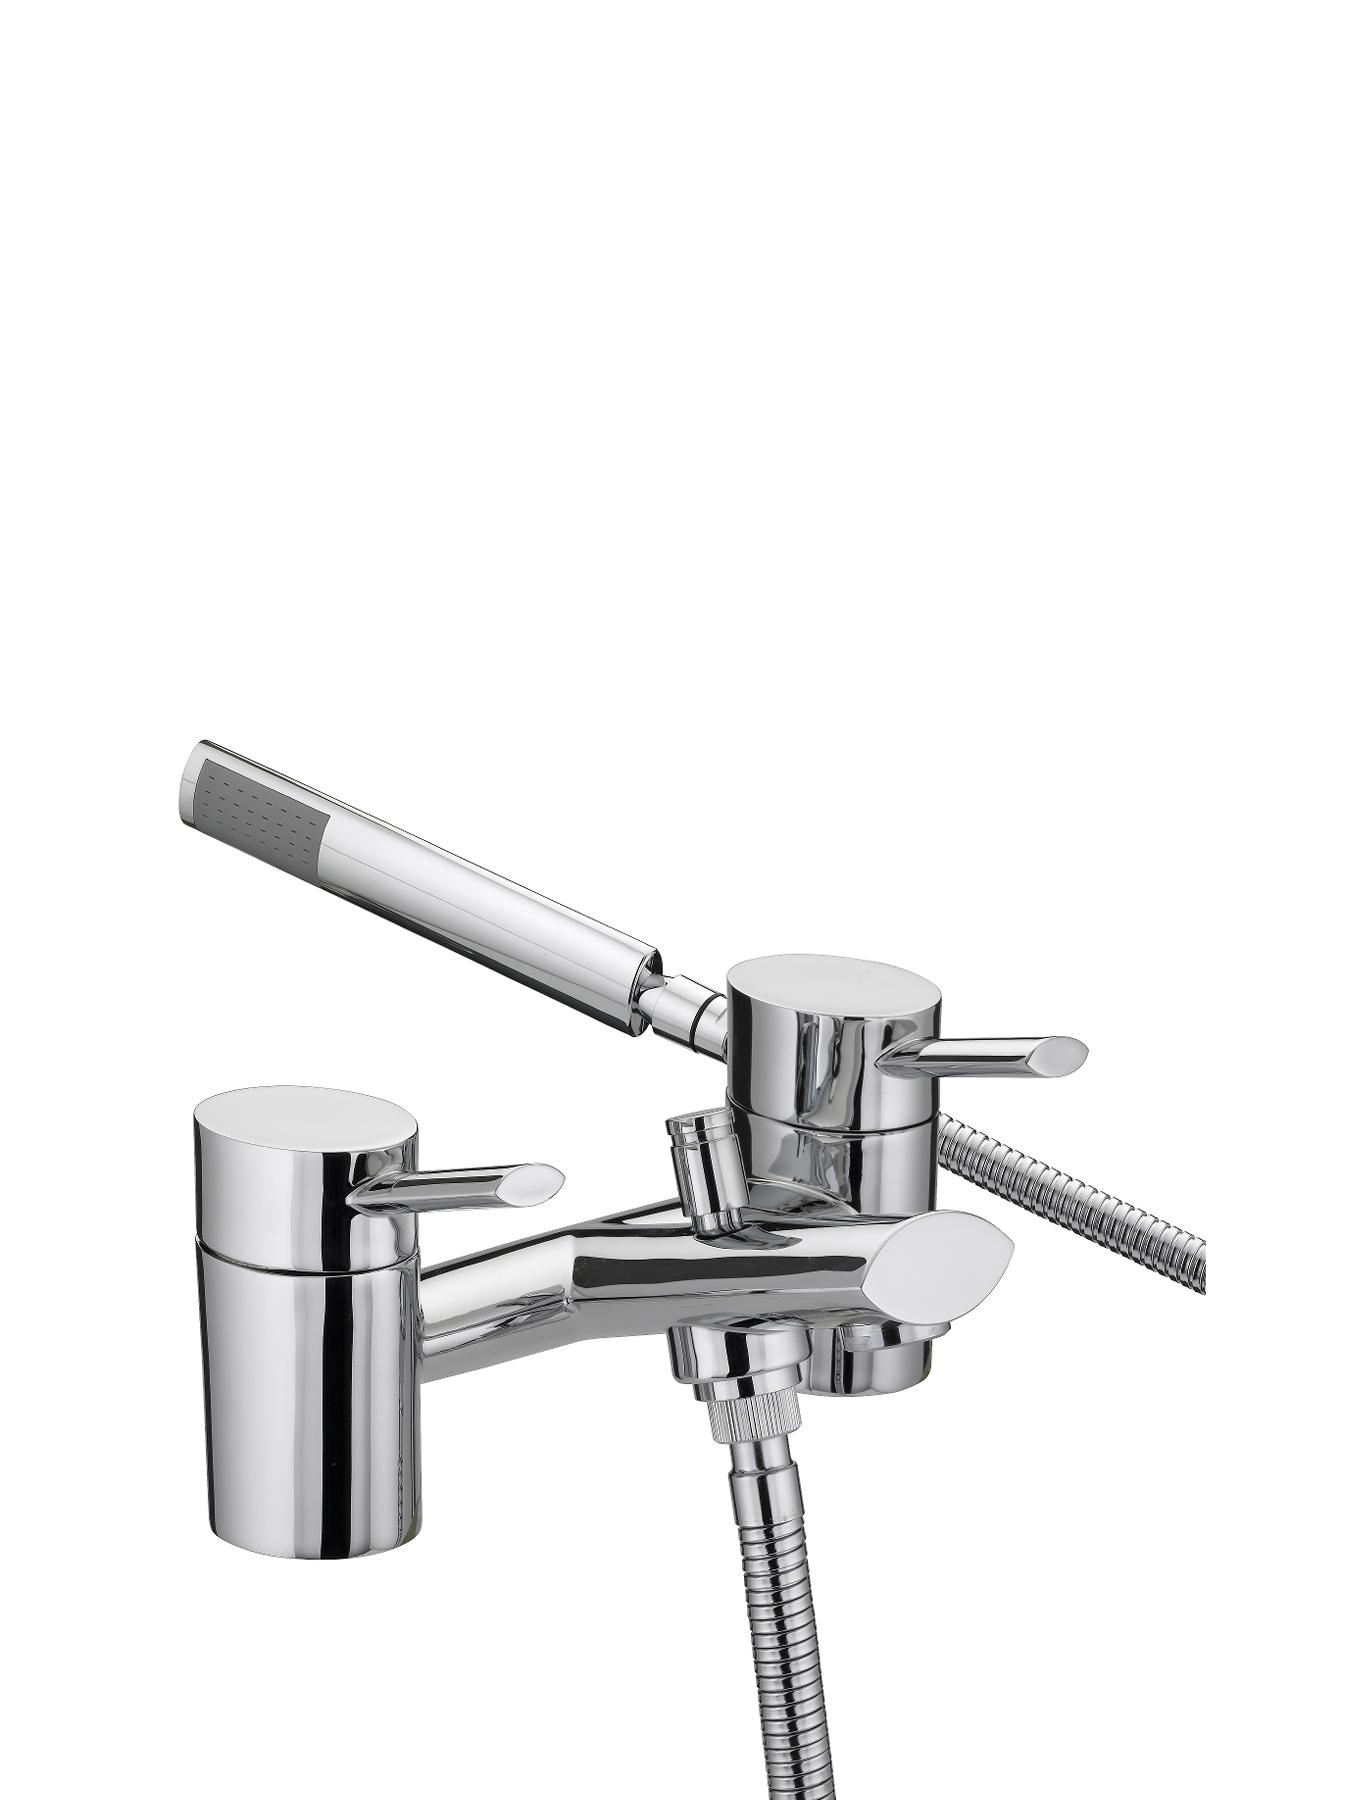 Bristan Oval Bath Shower Mixer Tap - Chrome